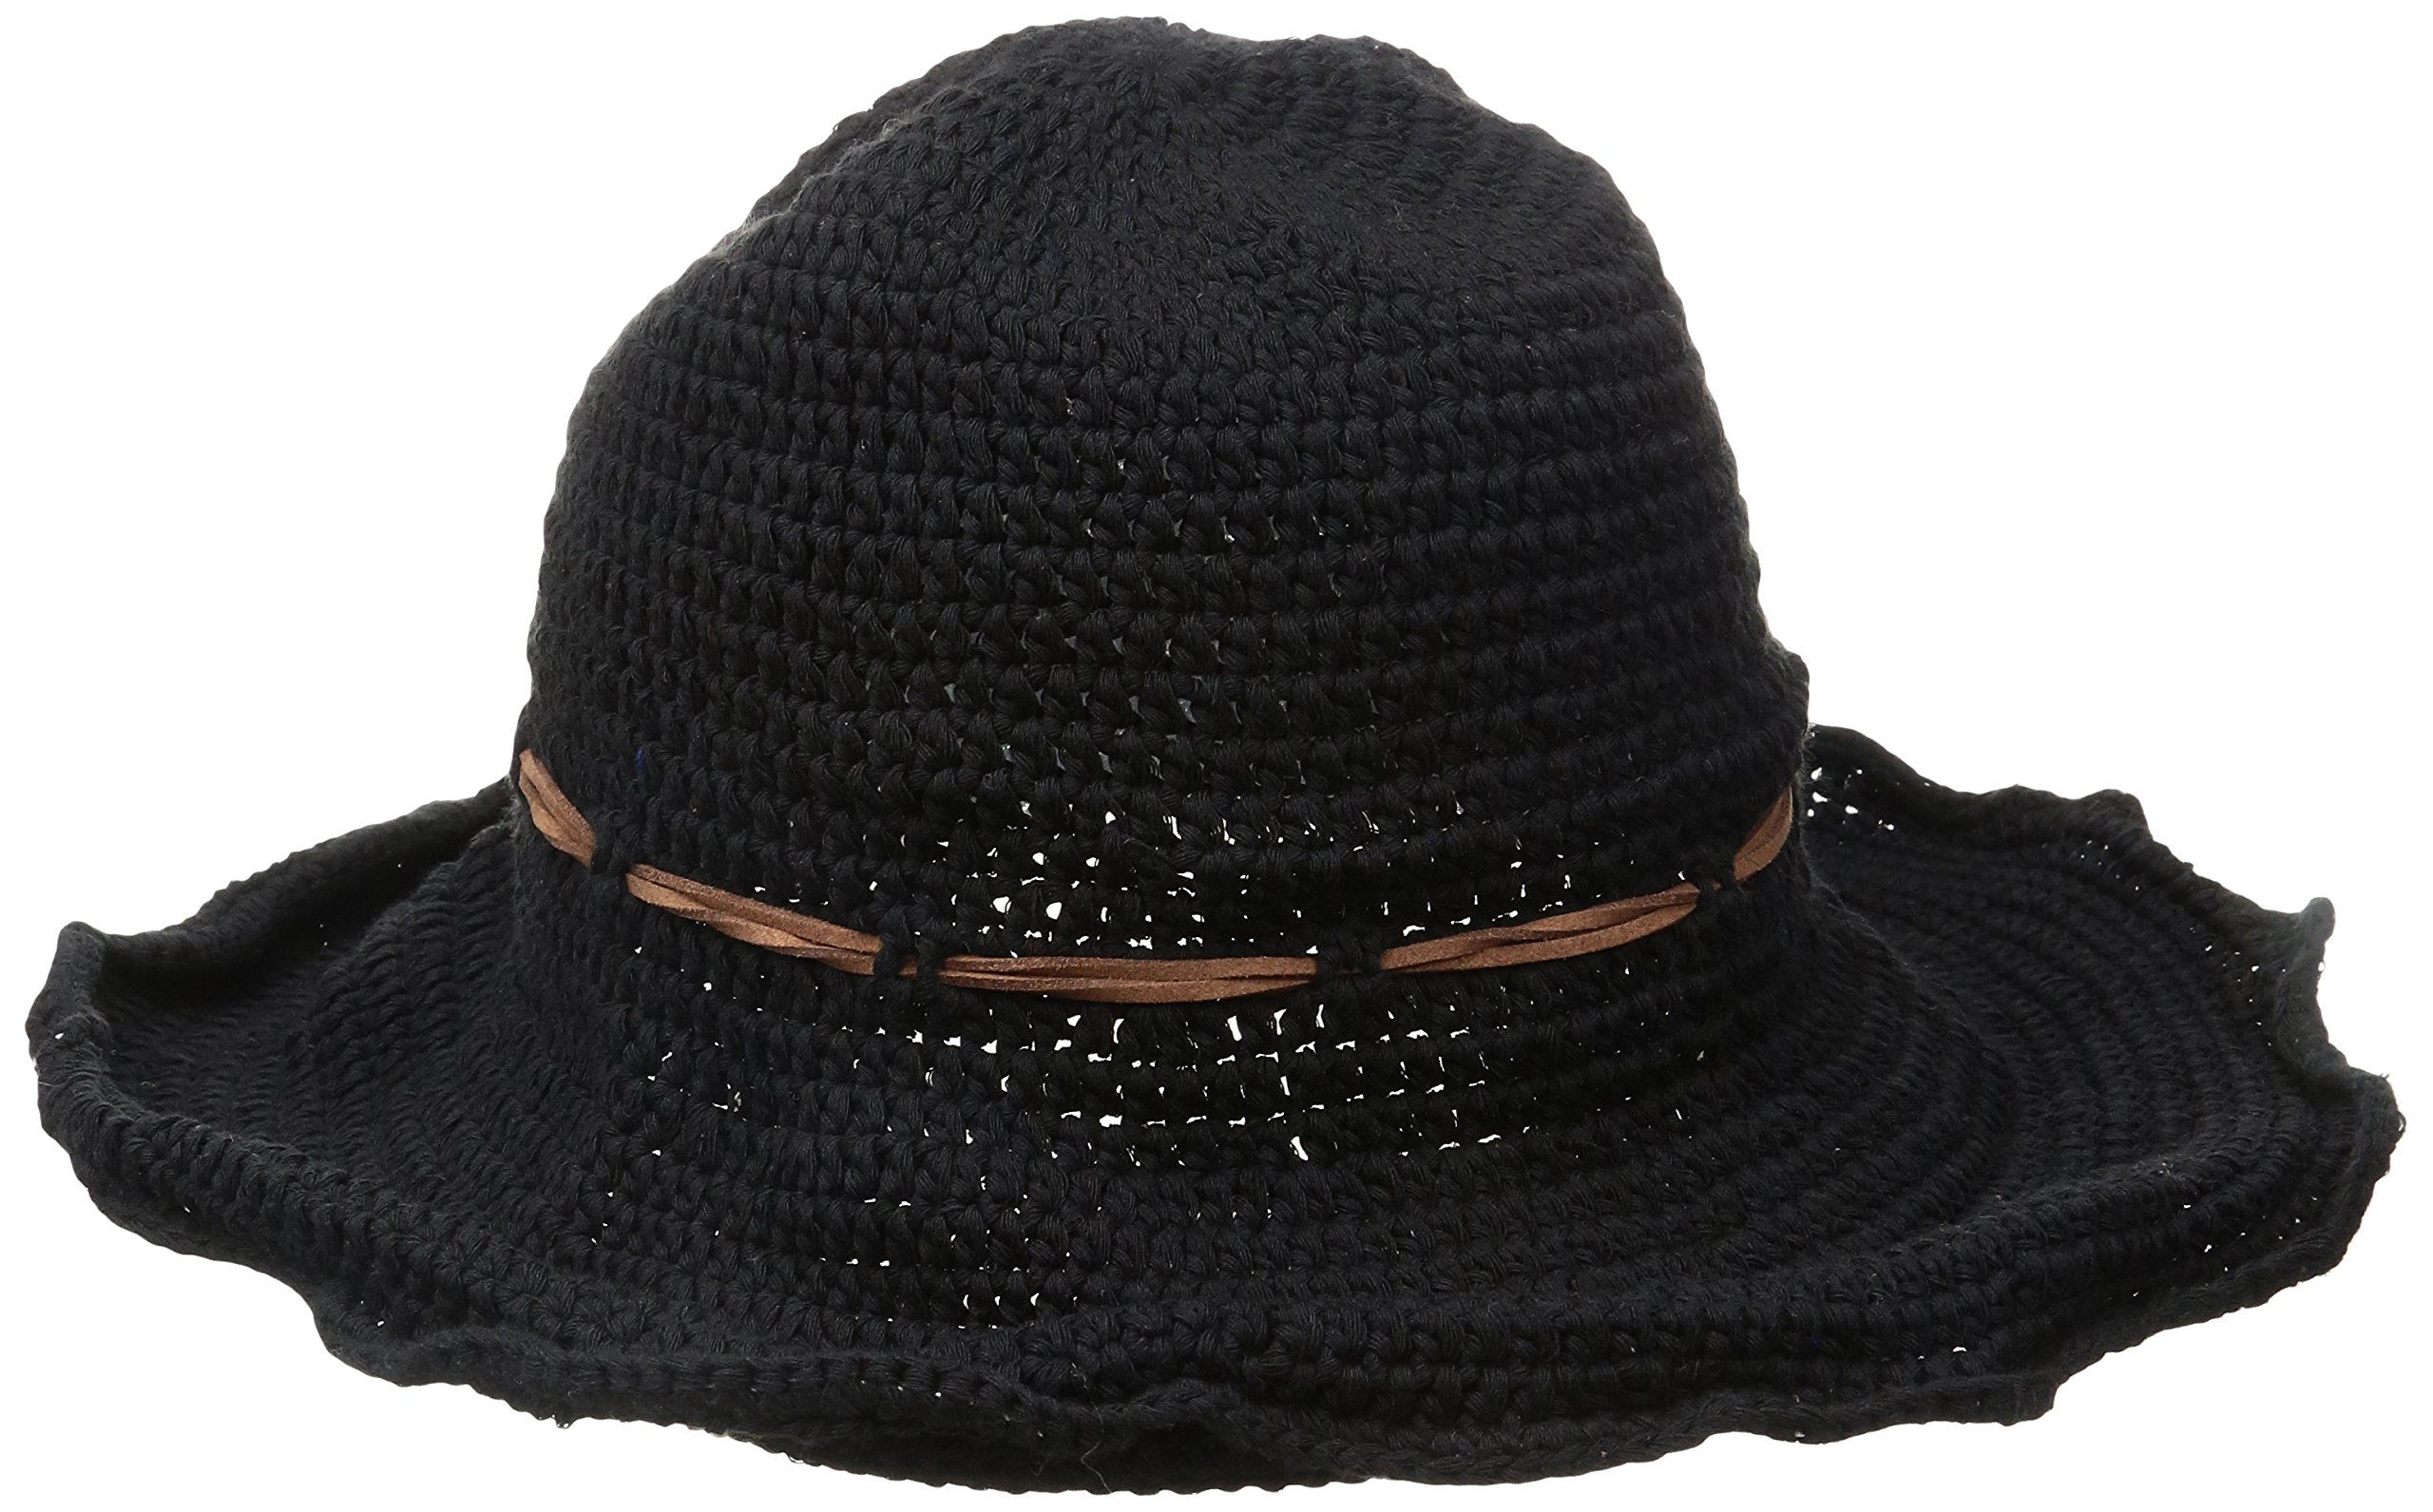 ale by Alessandra Women's Nikki Retro Crochet Floppy Hat With Leather Trim, Black, One Size